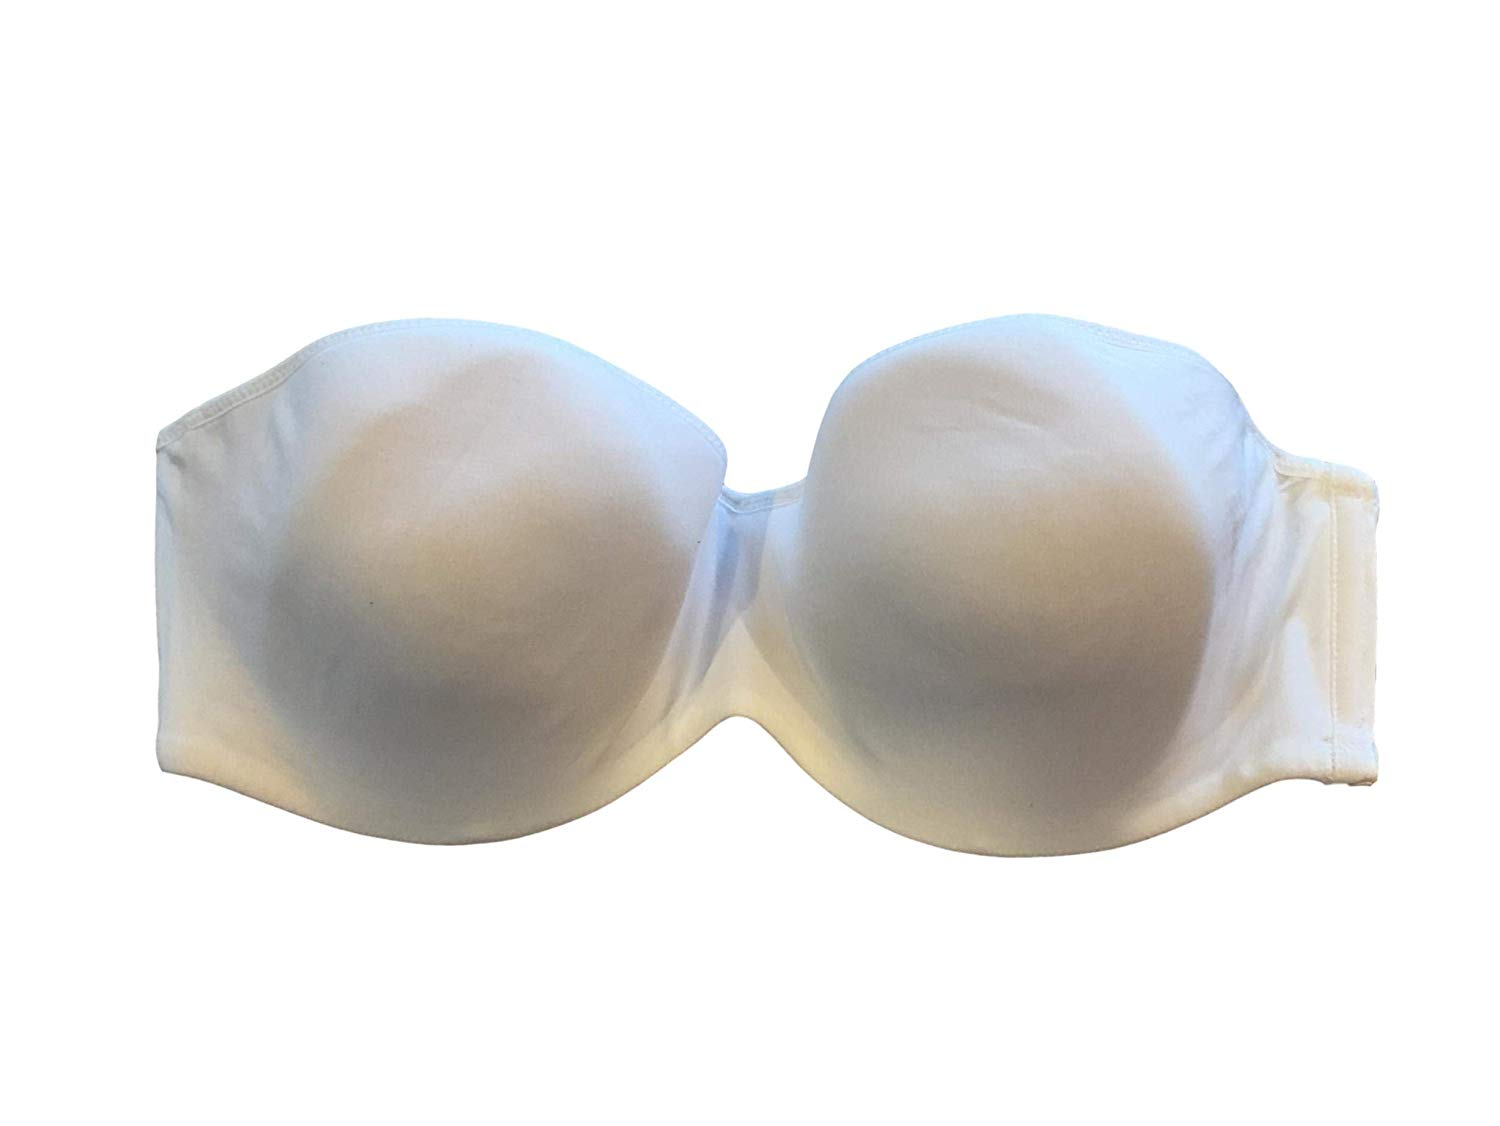 b4bc2a03fc Get Quotations · Wonderbra Strapless Stretch Foam Bra Several Styles    Colors (32A